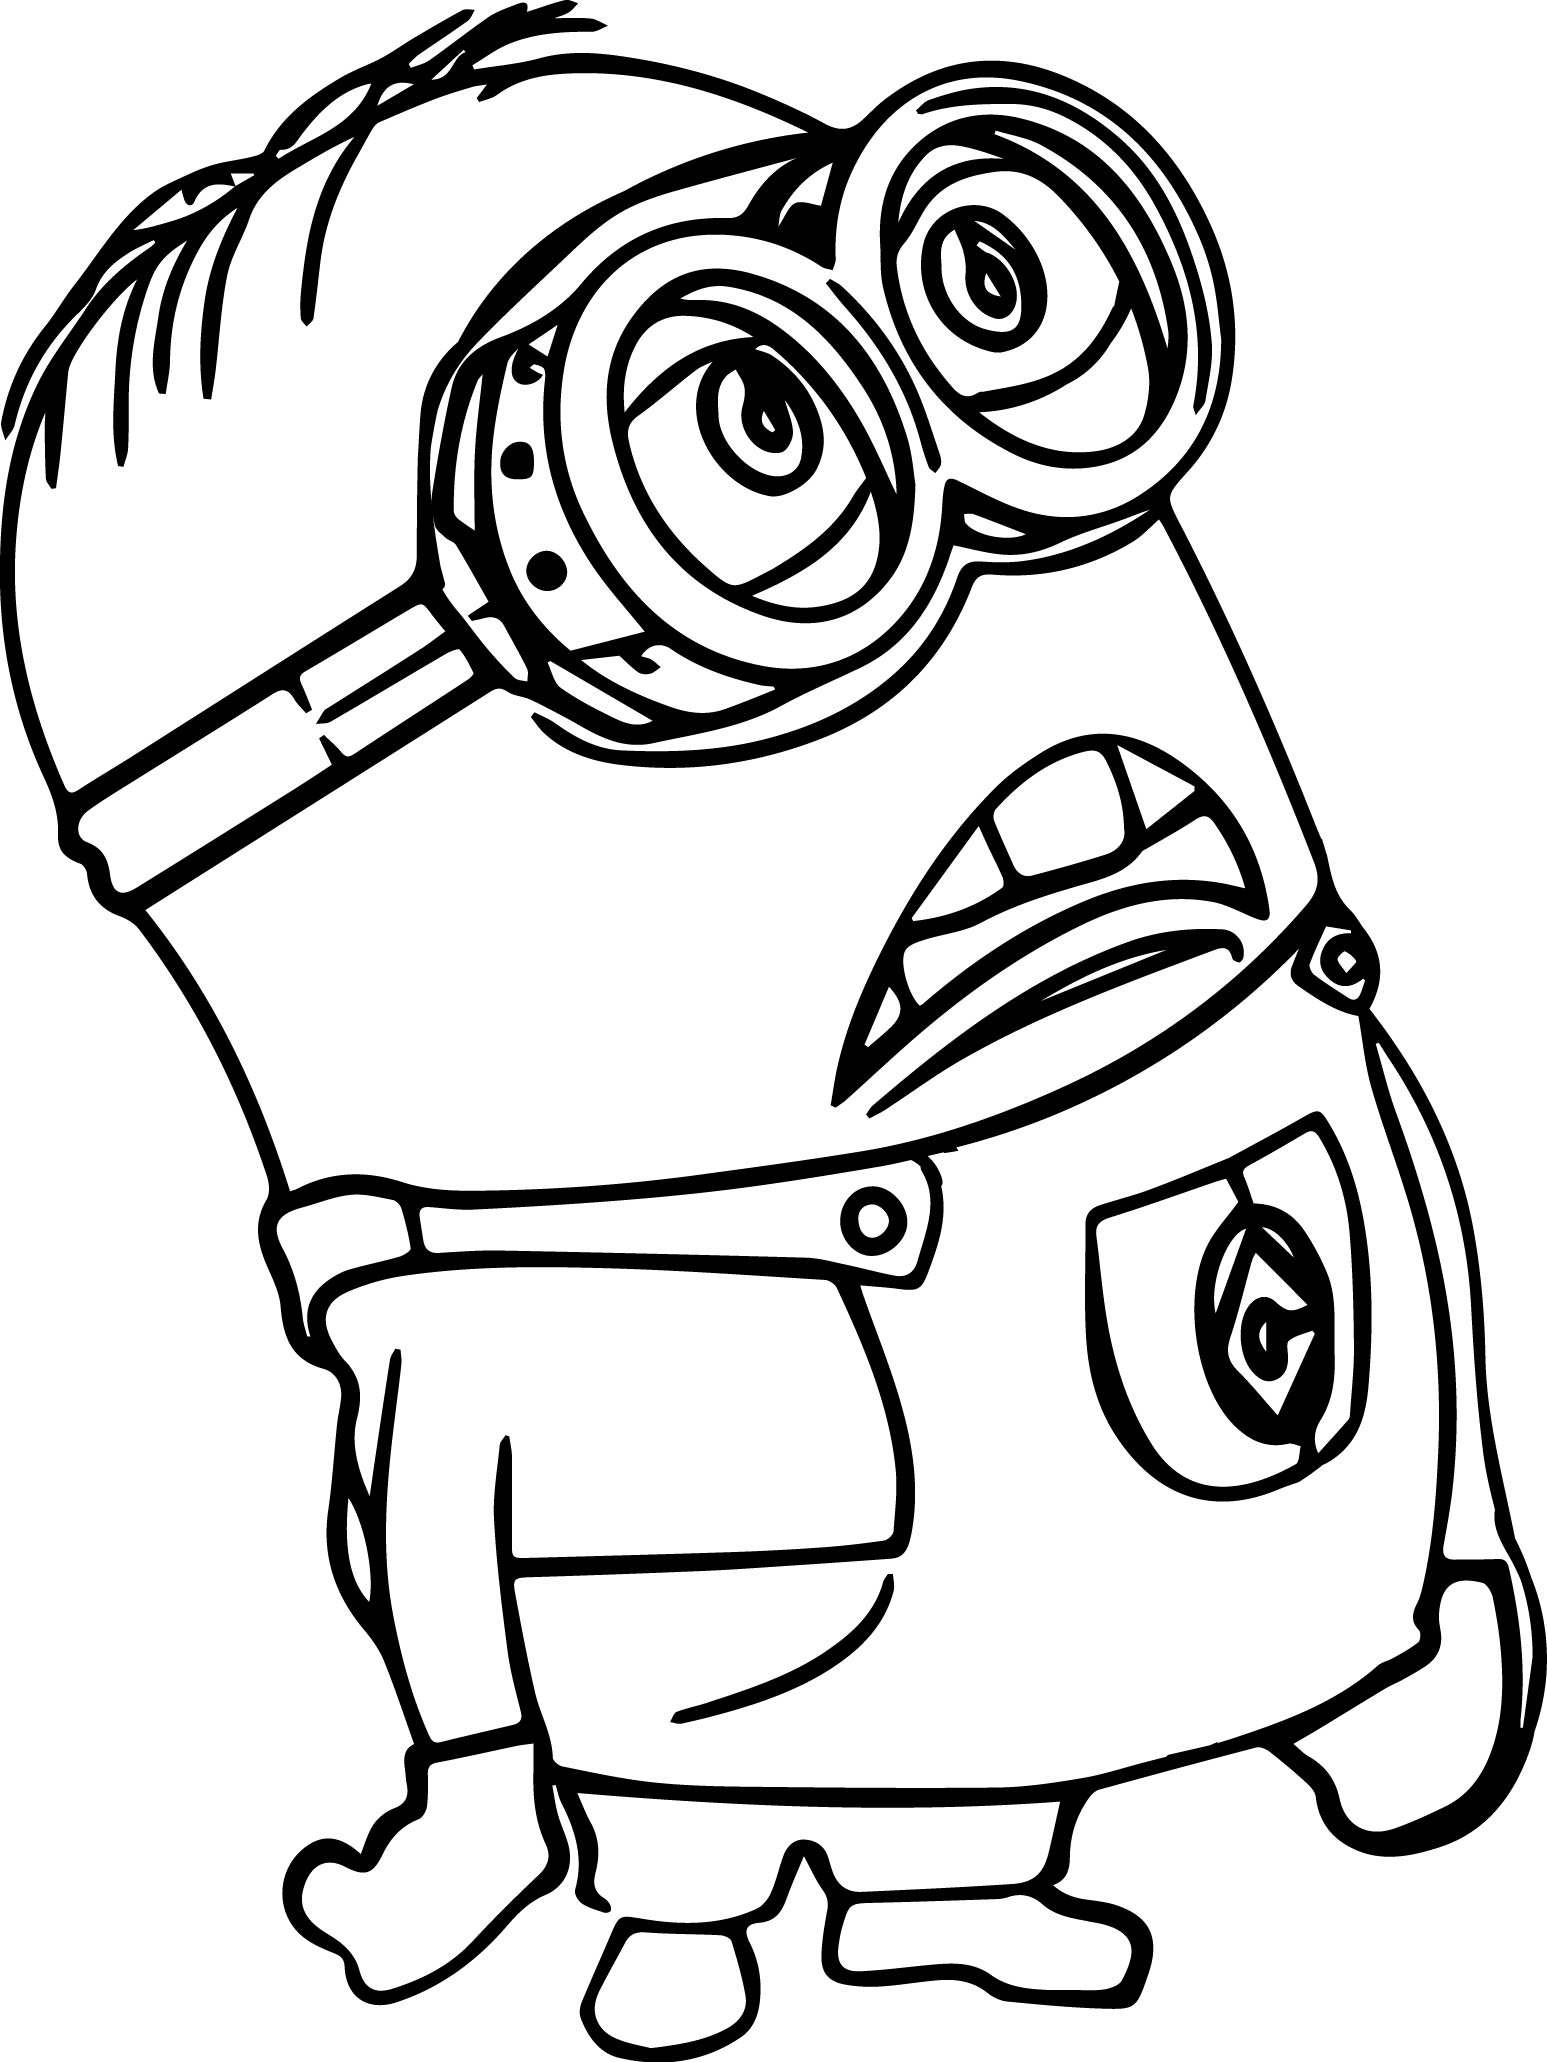 Minion Of Despicable Me Coloring Page Wecoloringpage